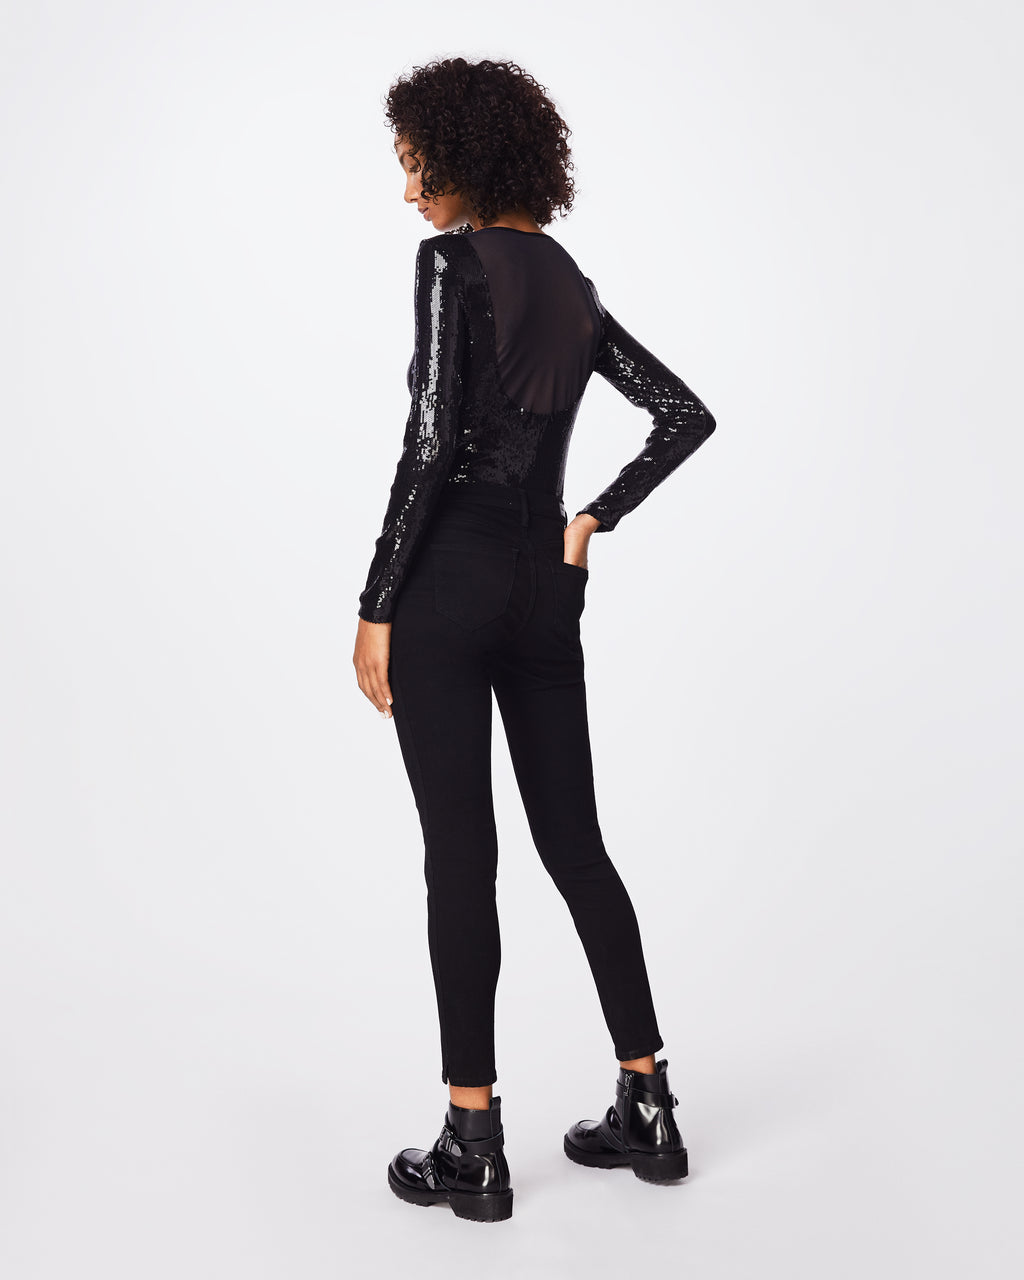 BD10254 - SEQUIN LONG SLEEVE BODYSUIT - tops - blouses - This fitted boat neck sequined long sleeve bodysuit is complete cool with scoop back mesh detail. Style with black denim or a mini skirt.